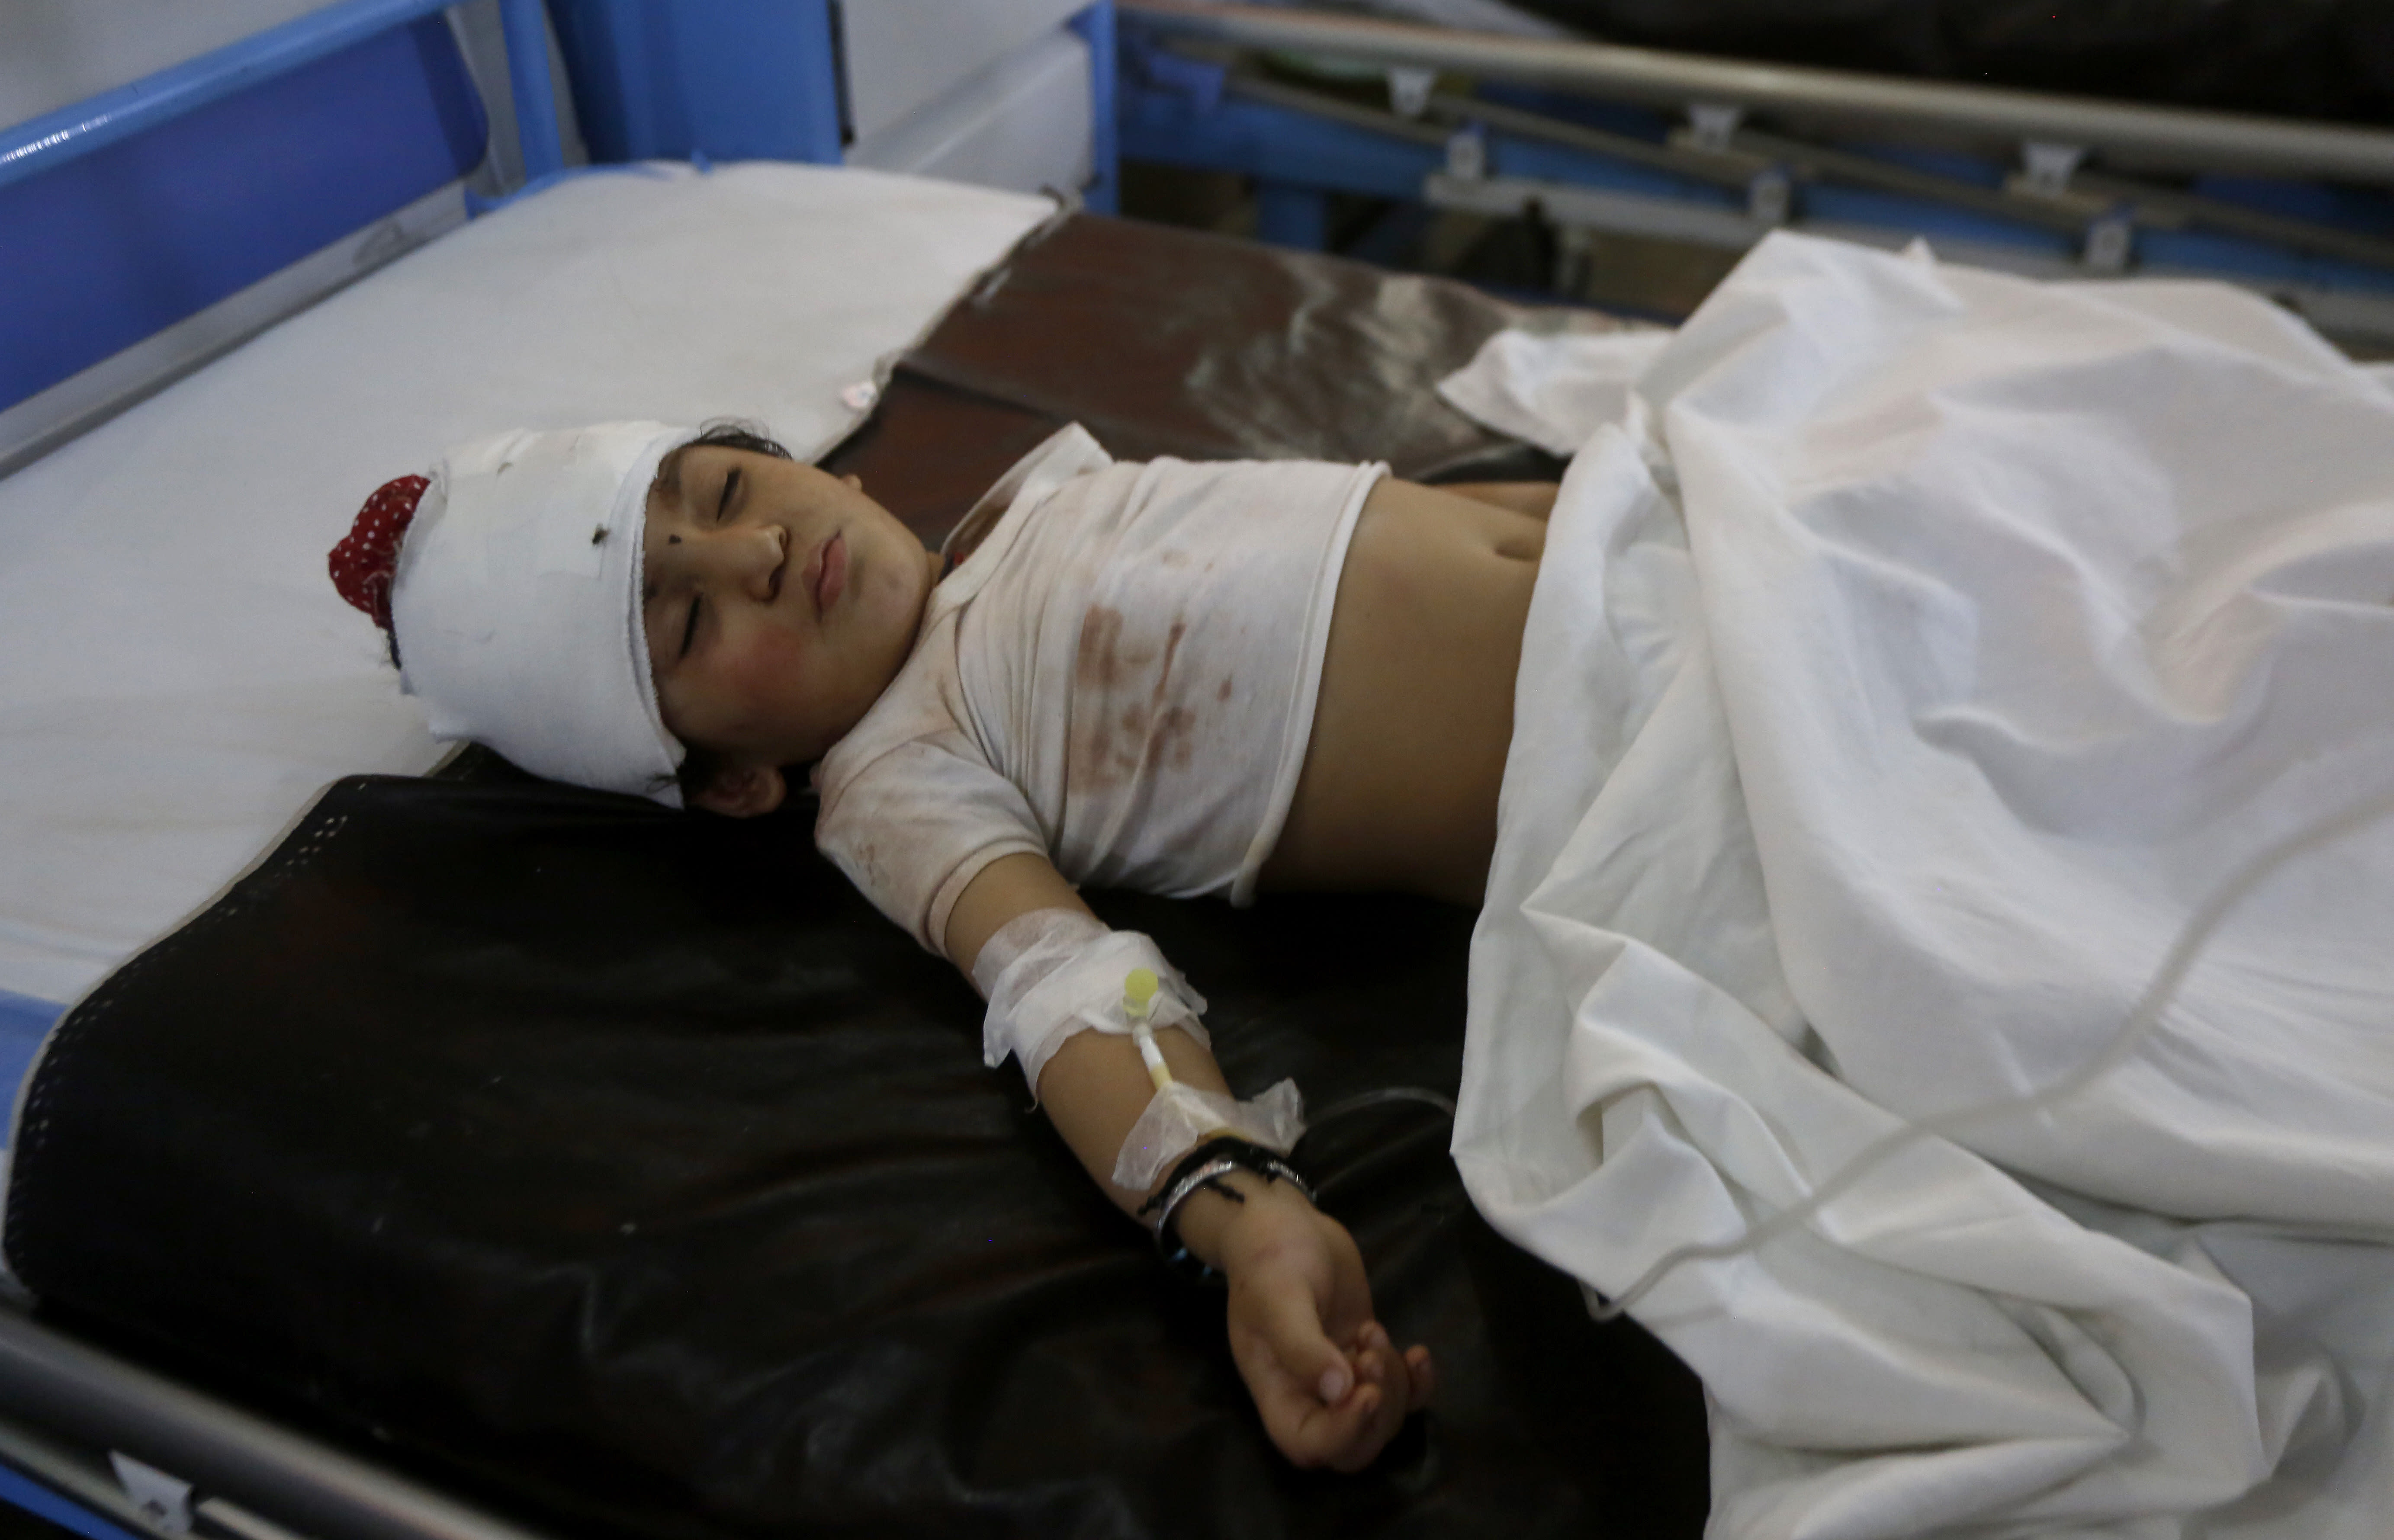 A child, who was injured in bus and train accident, lies on bed after receiving initial treatment at a hospital in Sheikhupura near Lahore, Pakistan, Friday, July 3, 2020. A passenger train crashed into a bus carrying Sikh pilgrims at an unmanned railway crossing in eastern Pakistan, police and rescue officials said. (AP Photo/K.M. Chaudary)